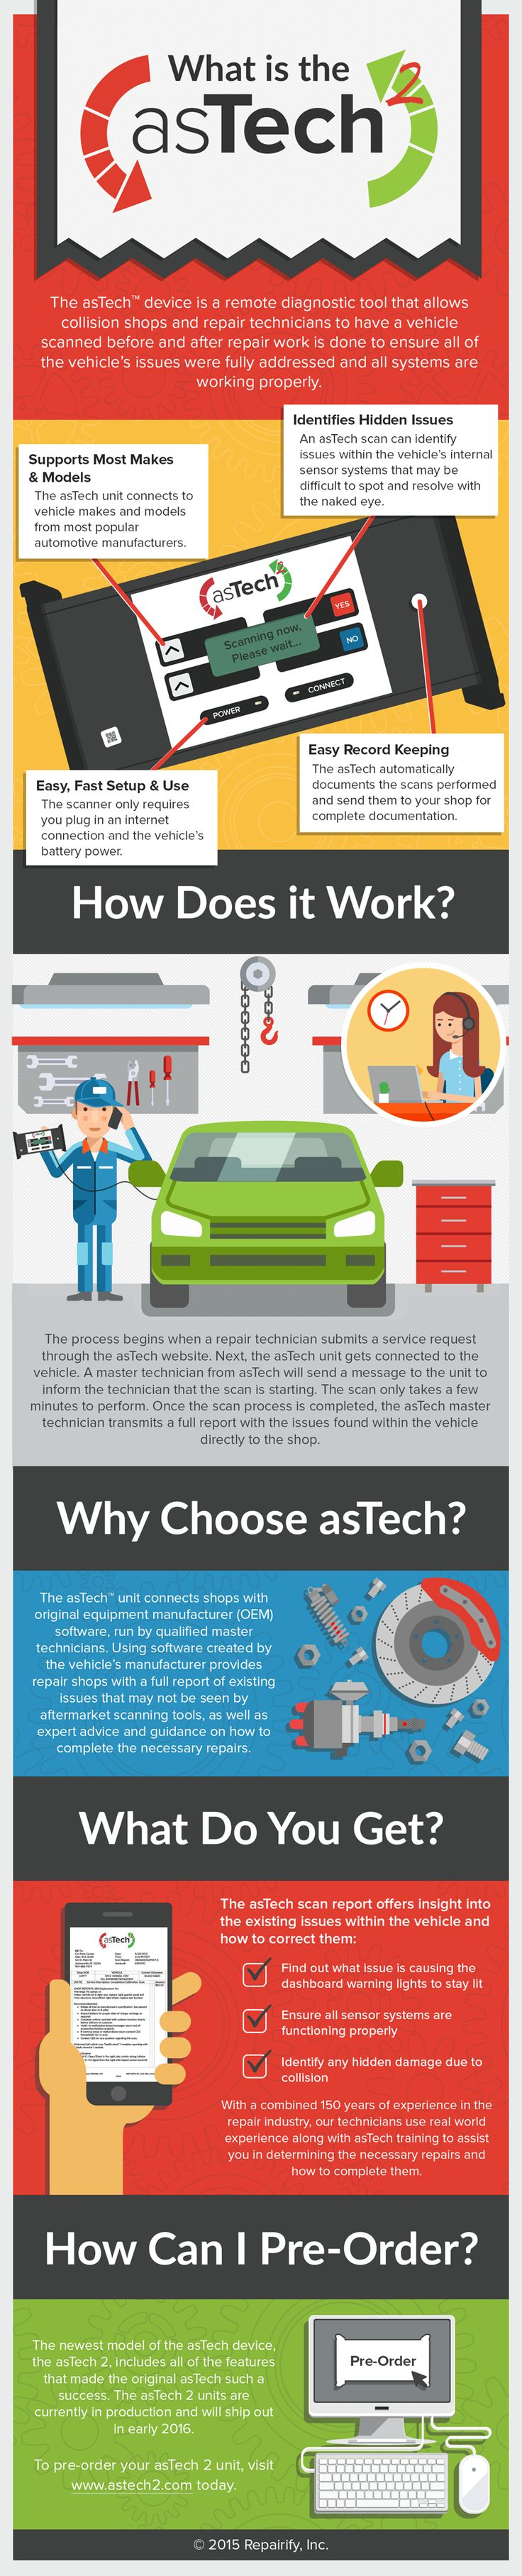 Auto body repair checklist template success success auto repair shop - This Is A Great Infographic About The Astech 2 Remote Diagnostic Tool That Auto Repair Shop